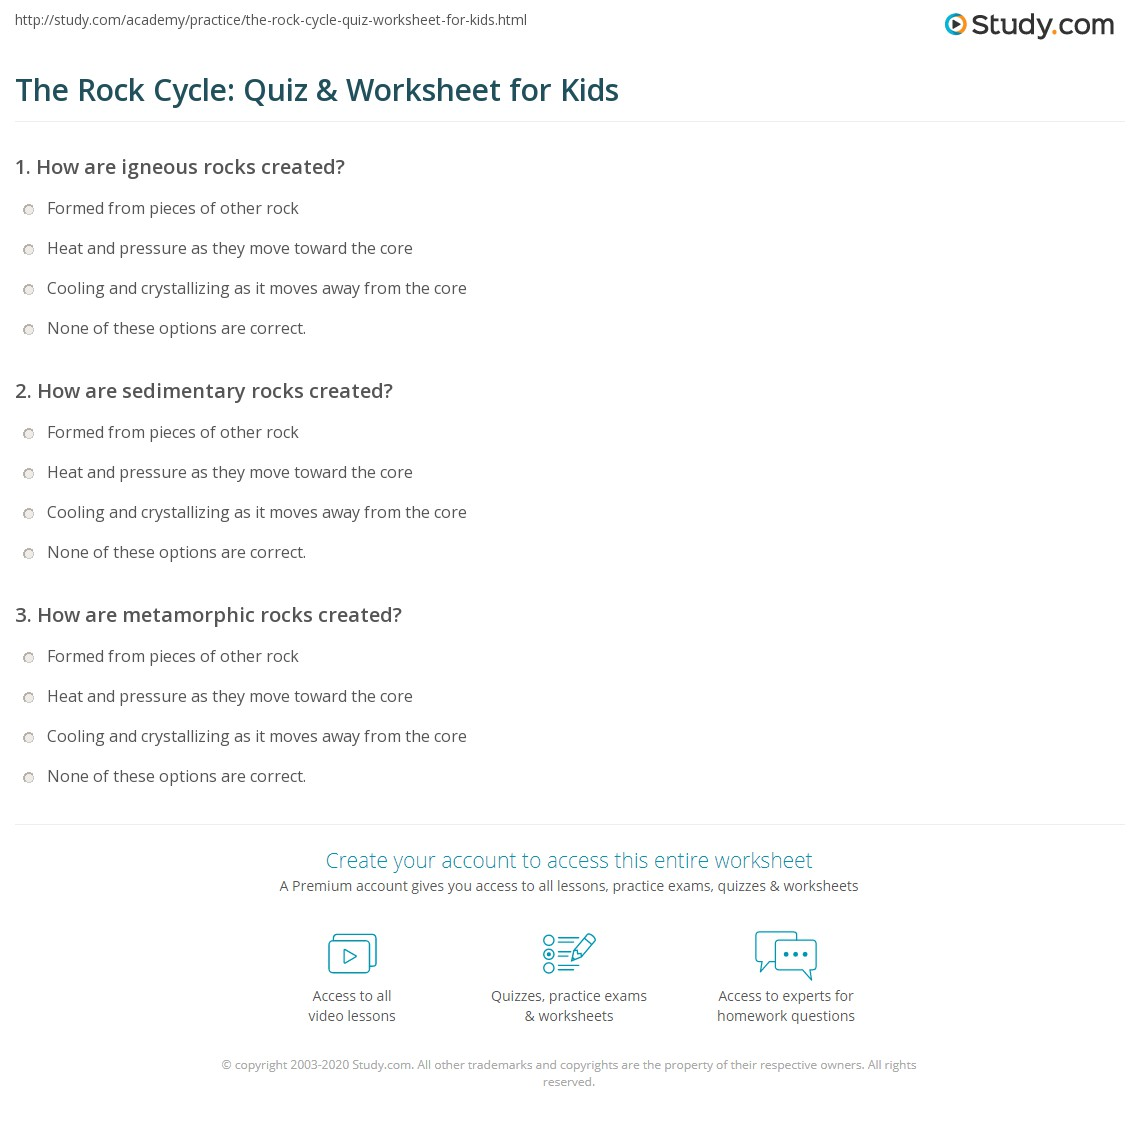 Worksheets The Rock Cycle Worksheet the rock cycle quiz worksheet for kids study com print lesson definition facts worksheet